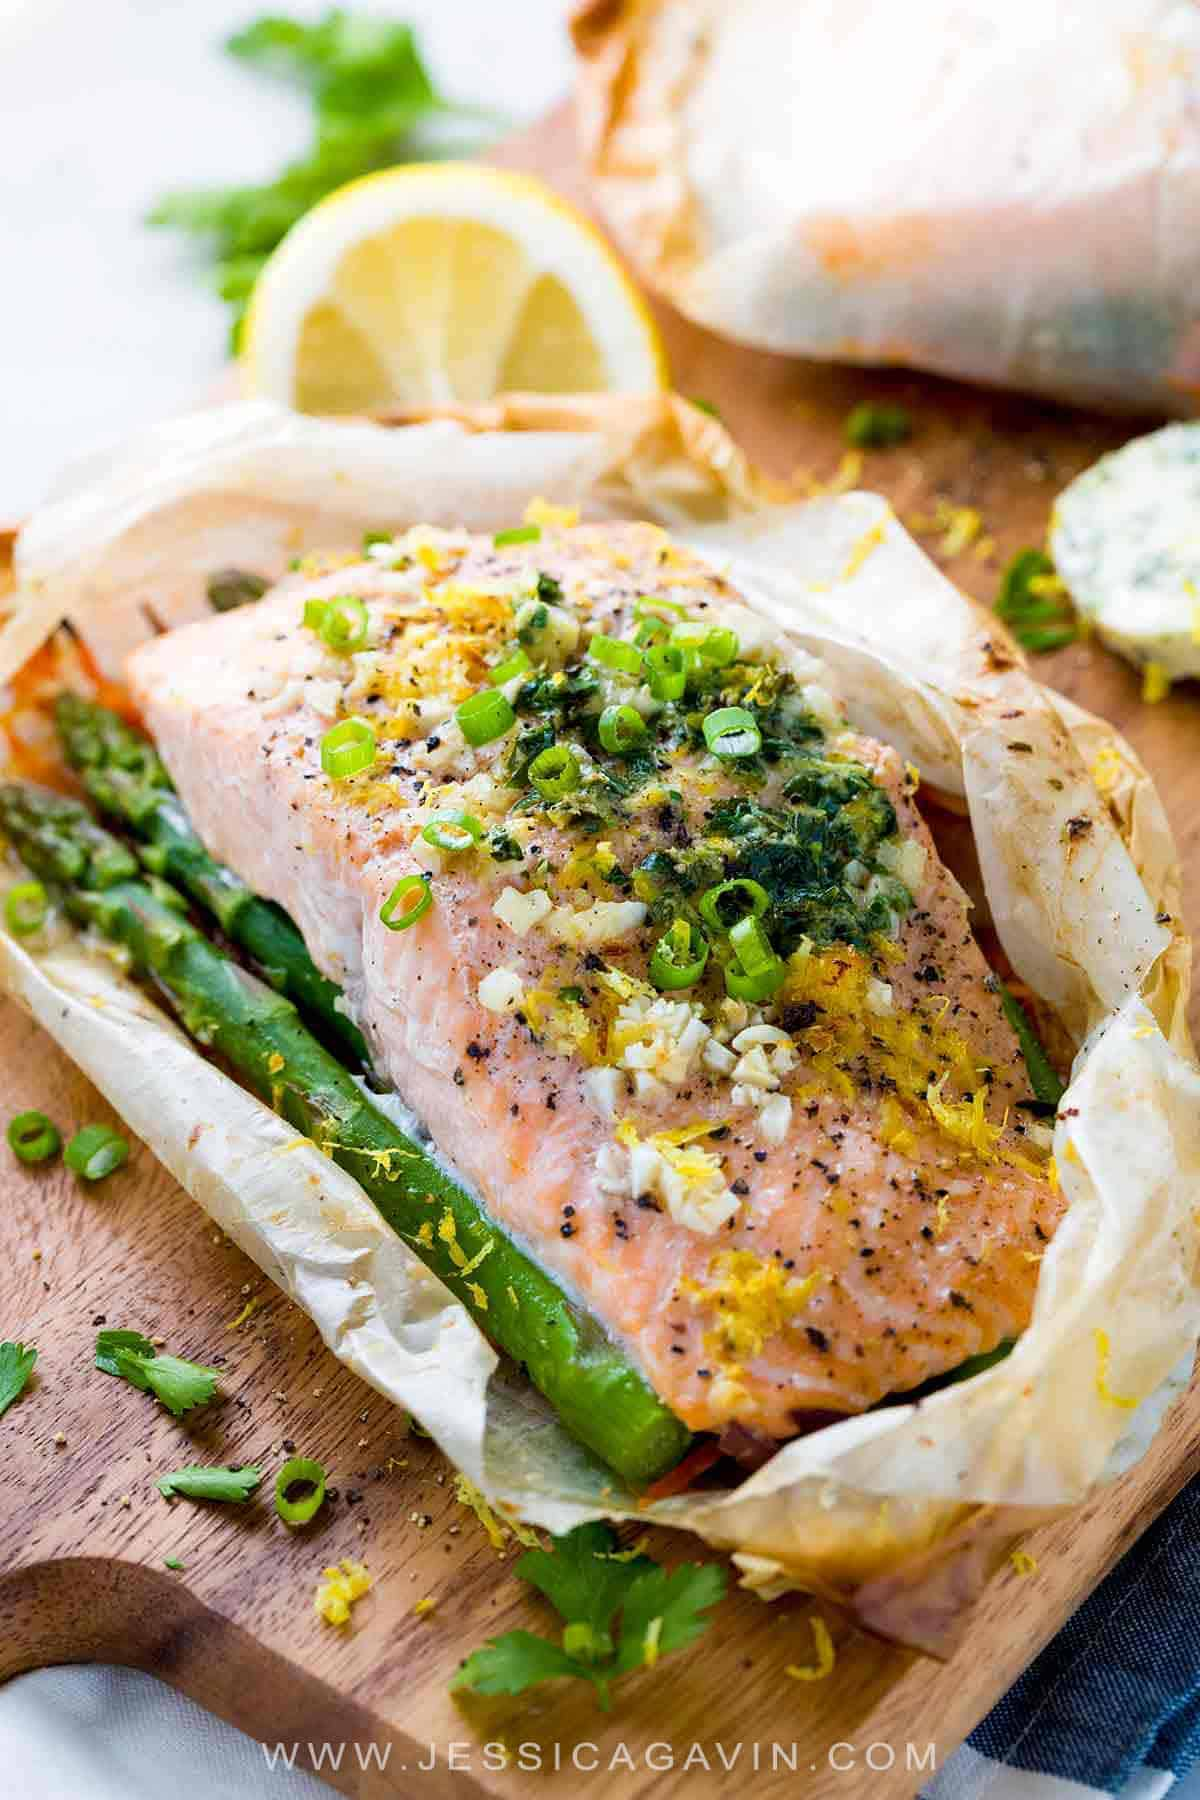 Salmon En Papillote - Fillets placed on a bed of vegetables, wrapped in a parchment paper pouch and baked in the oven. #salmonrecipes #frenchrecipes #fish #papillote